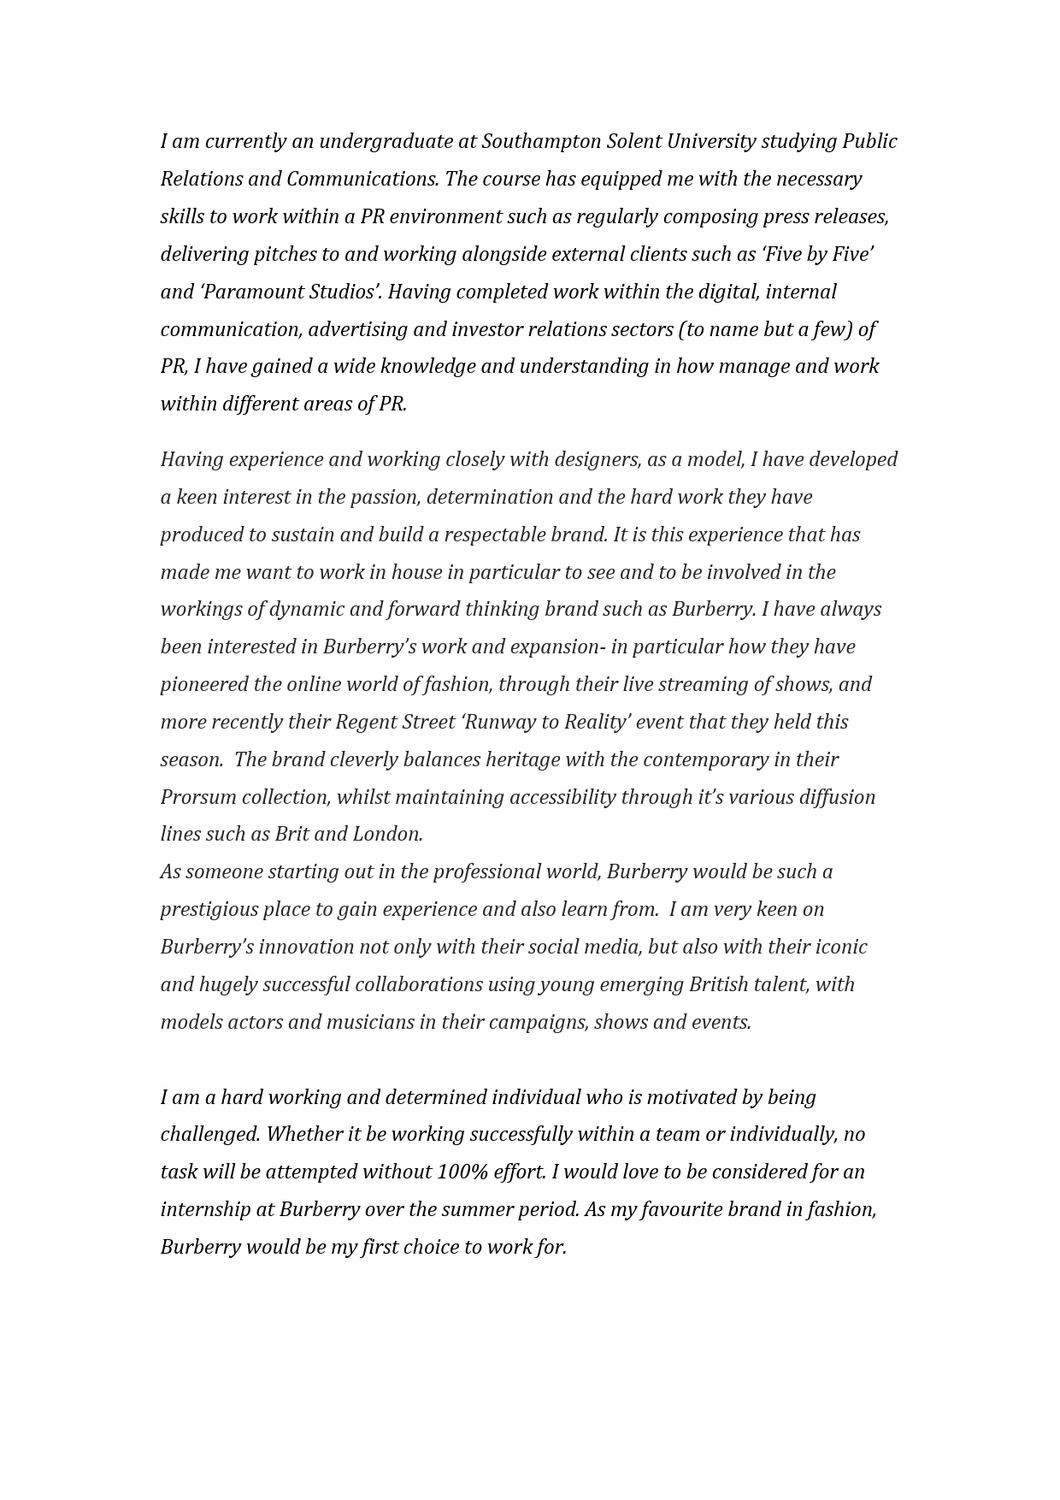 Burberry Cover Letter by sam morgansmith  issuu